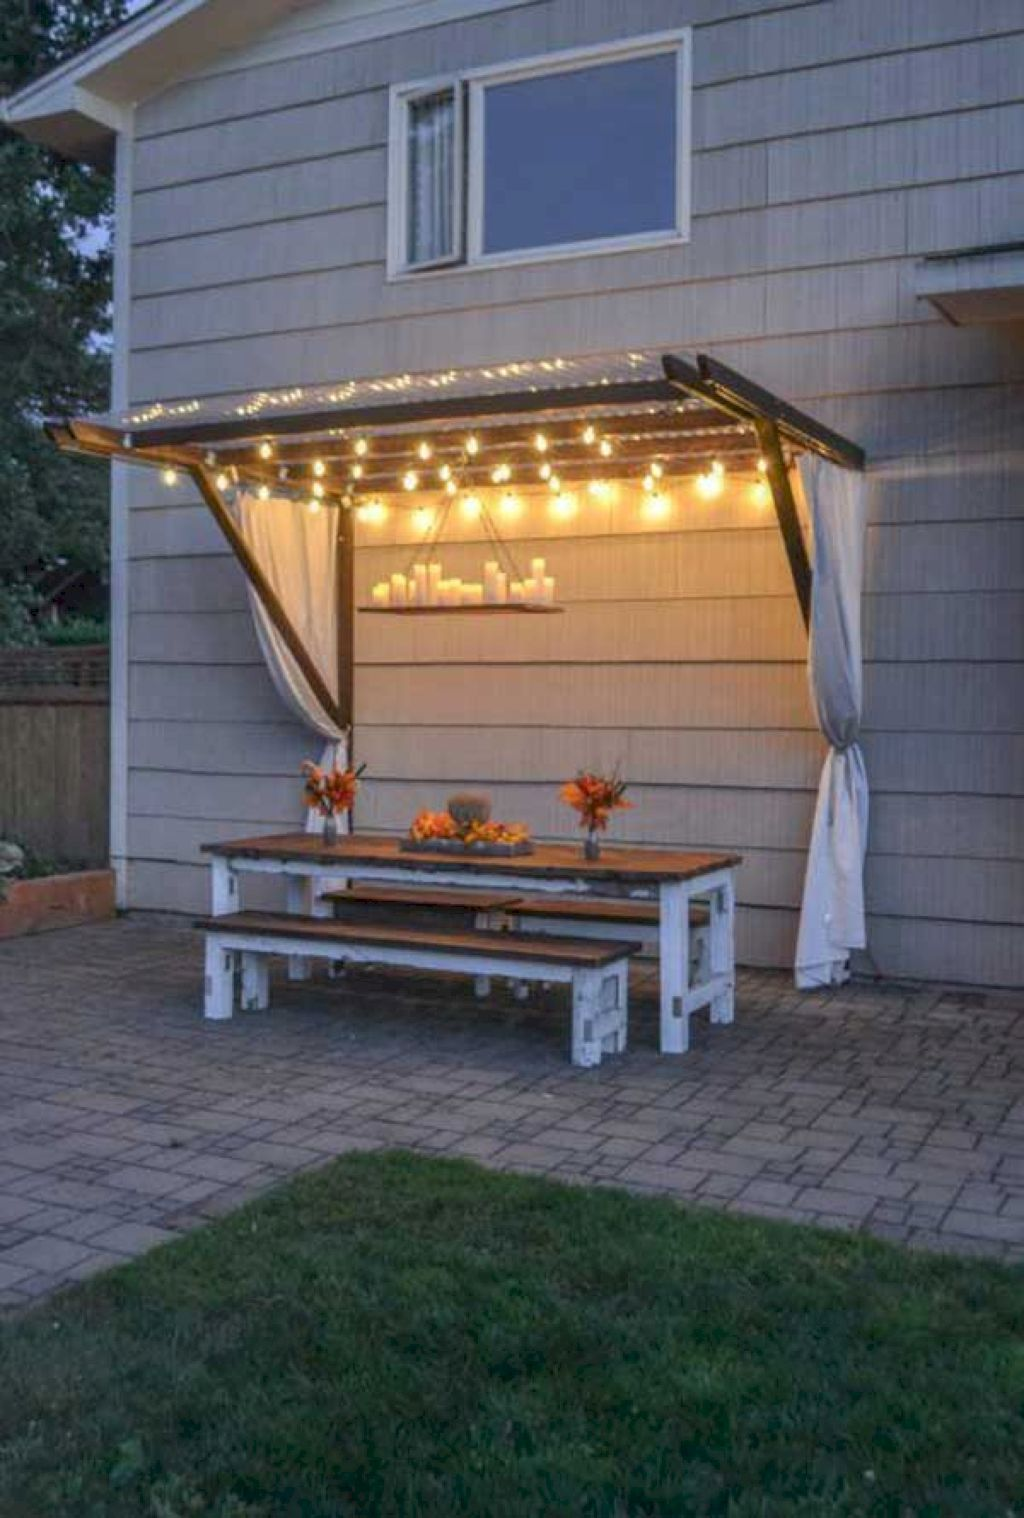 48 Inspiring Backyard Lighting Ideas images